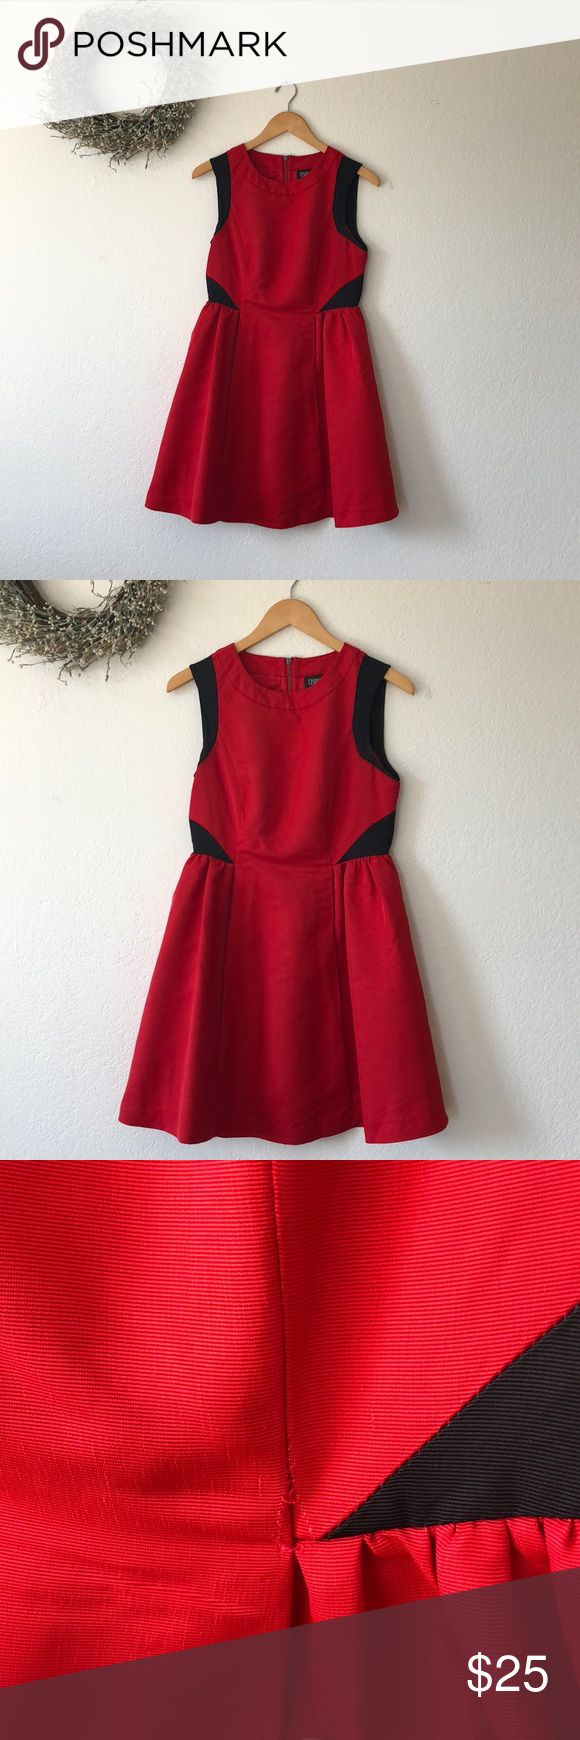 Prabal Gurung Dress Super cute dress. Was worn once,one flaw shown on photo.  Measurements  24 inches from armpit to bottom  30 inches Waist Prabal Gurung for Target Dresses